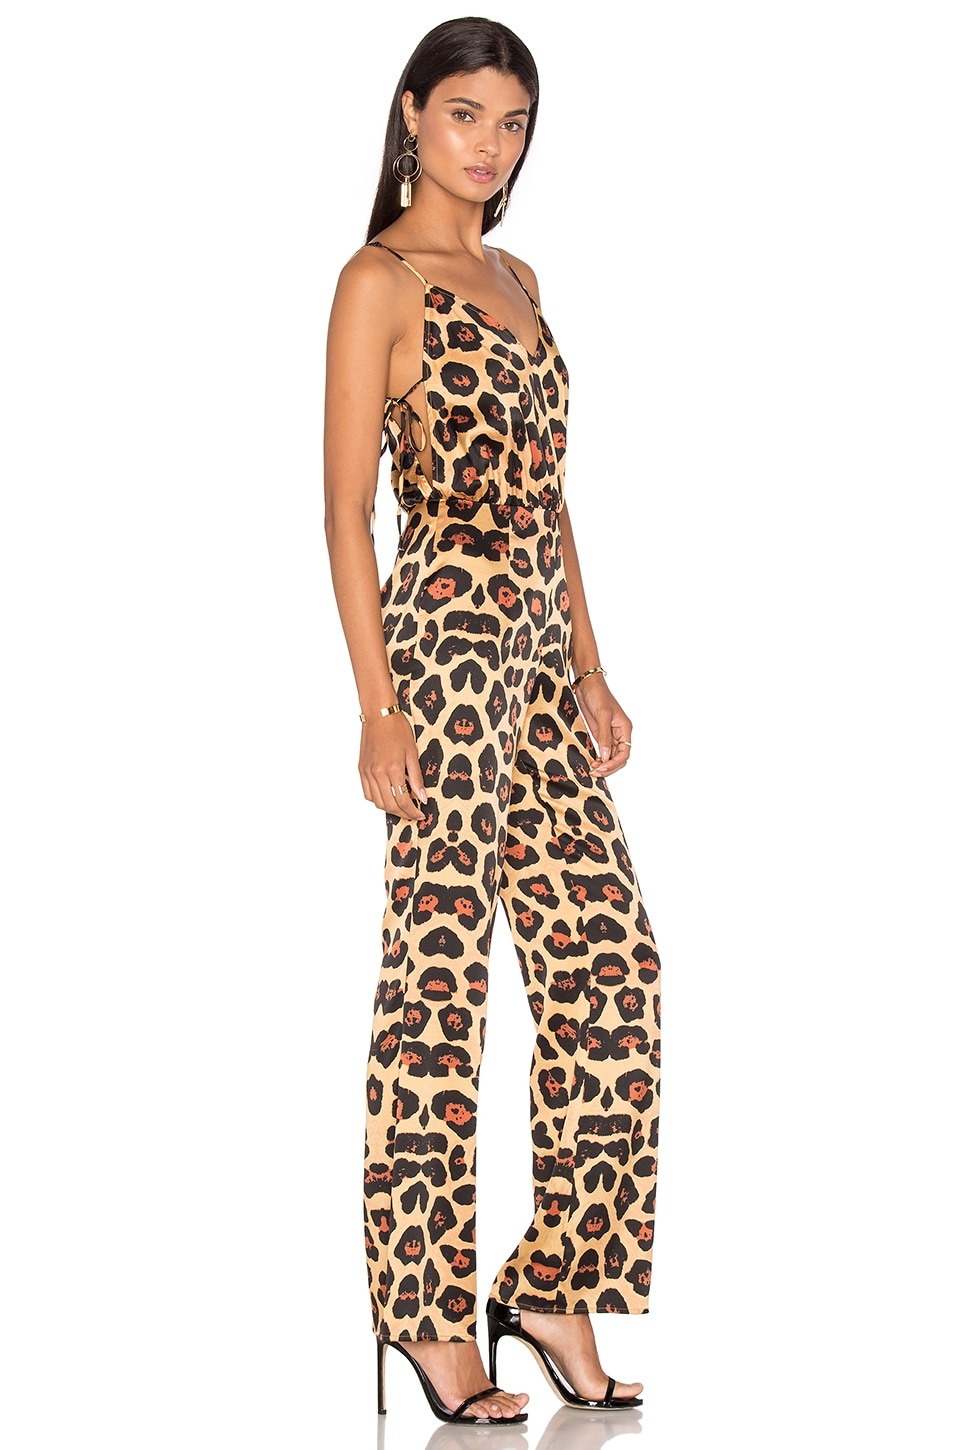 LPA Jumpsuit 15 in Painted Leopard